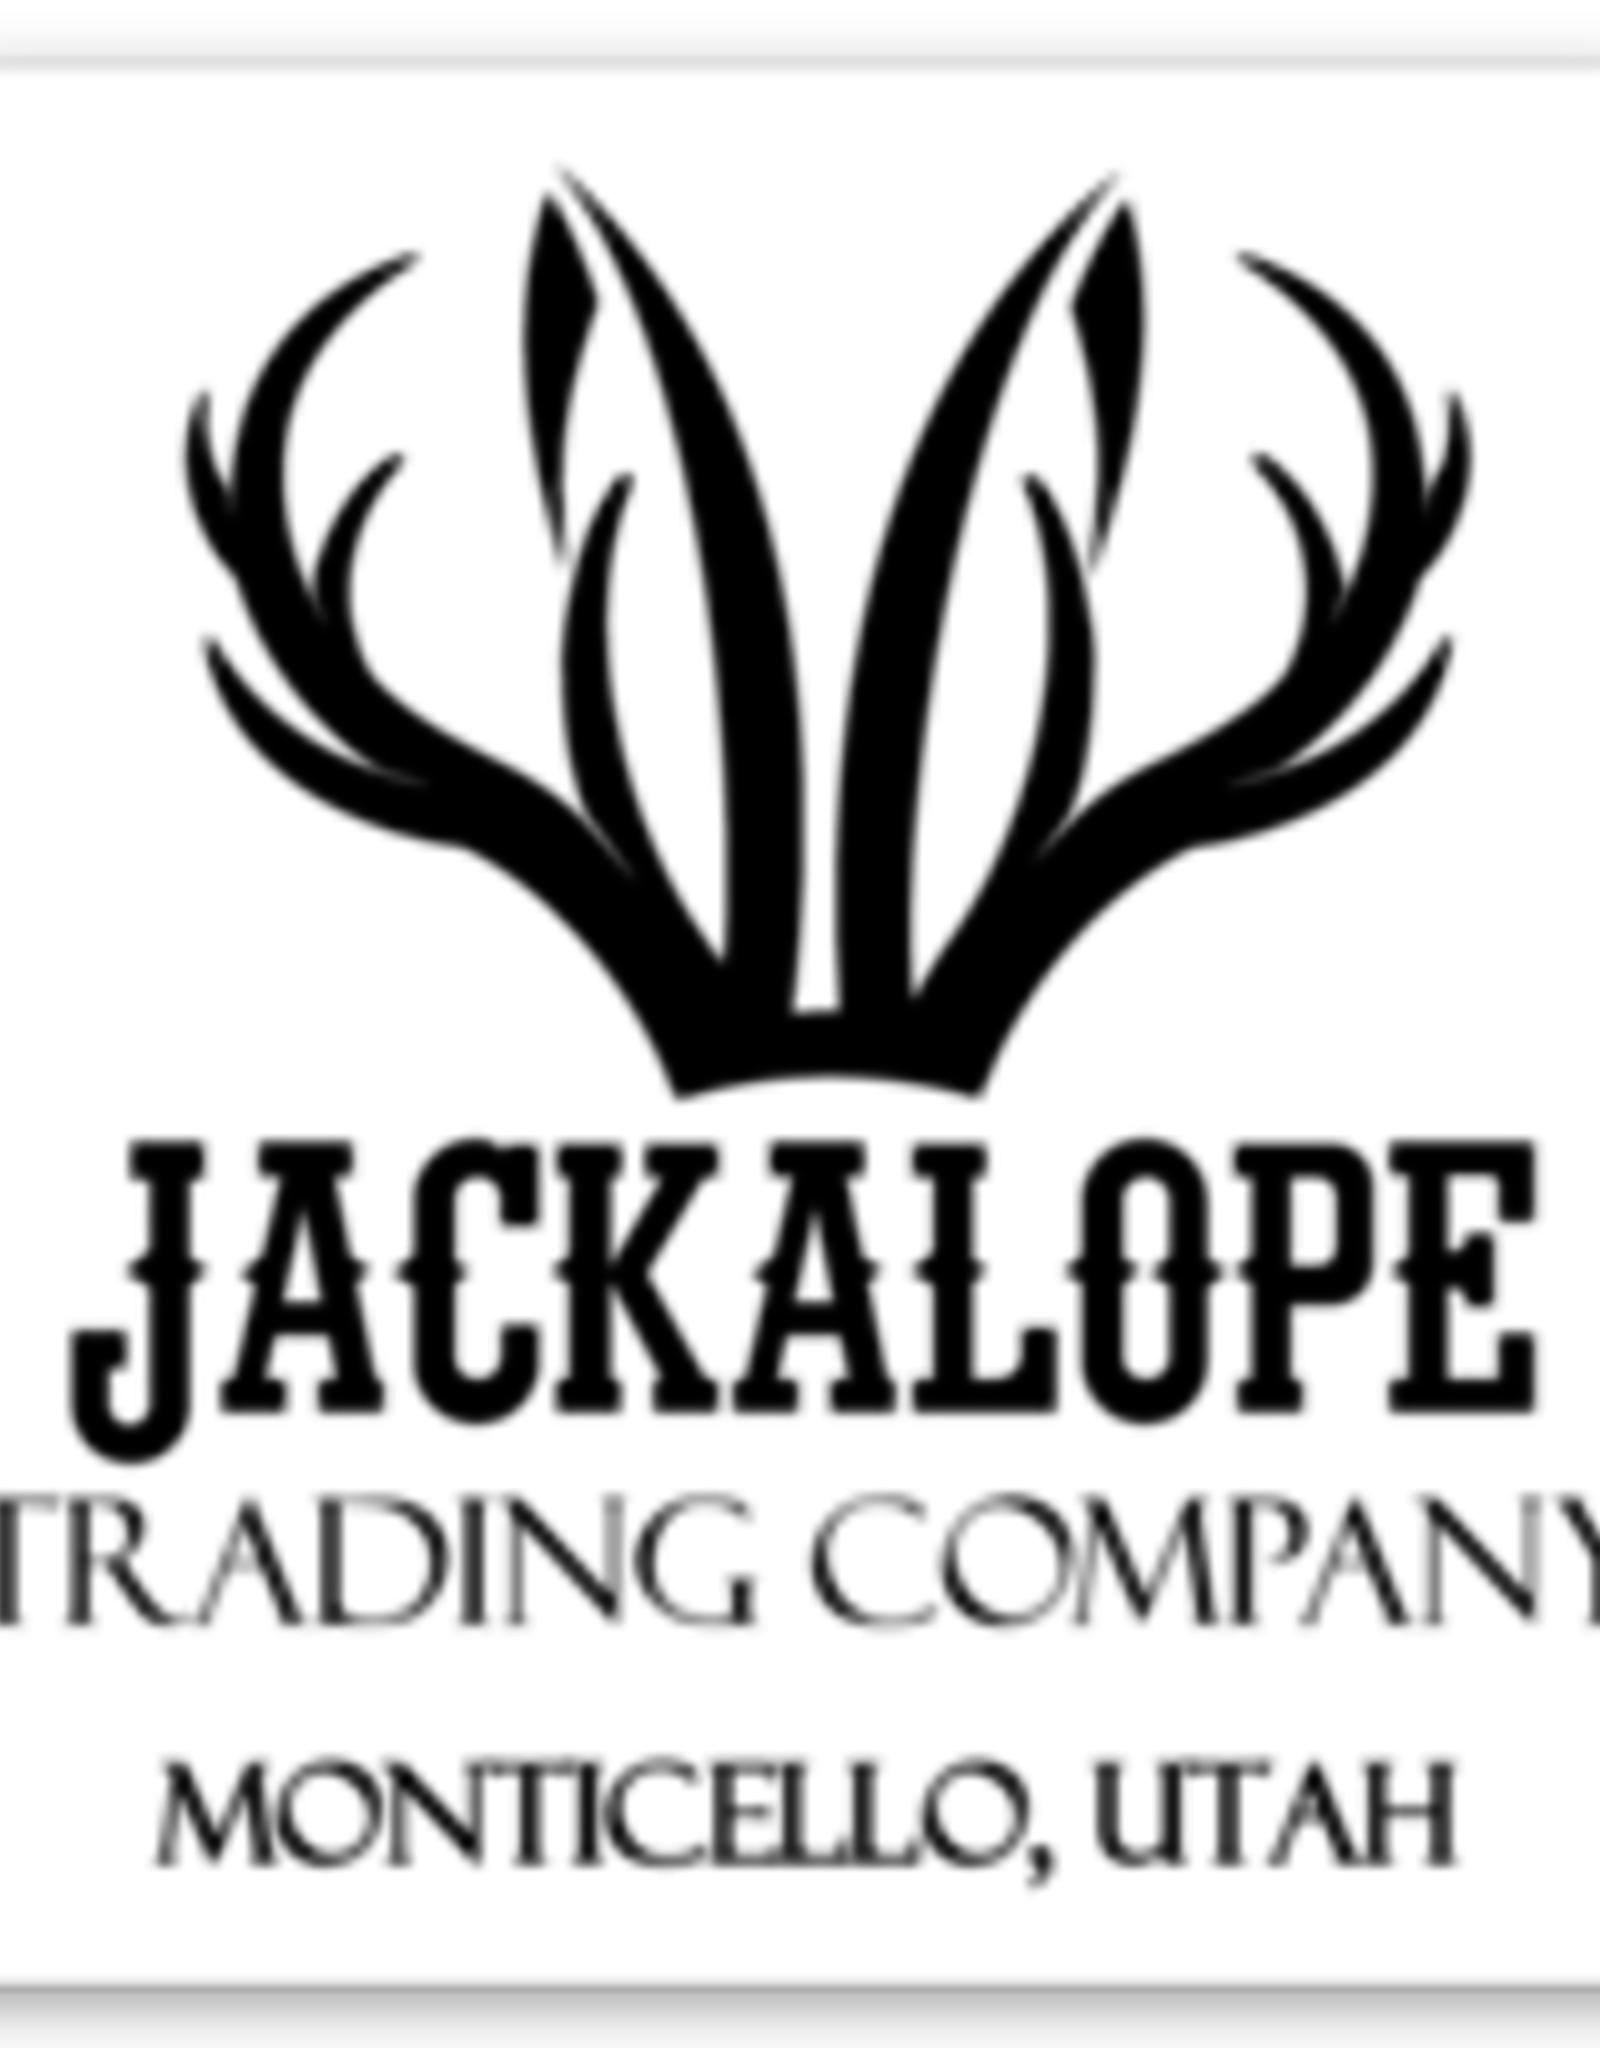 Jackalope Logo Stickers, small square